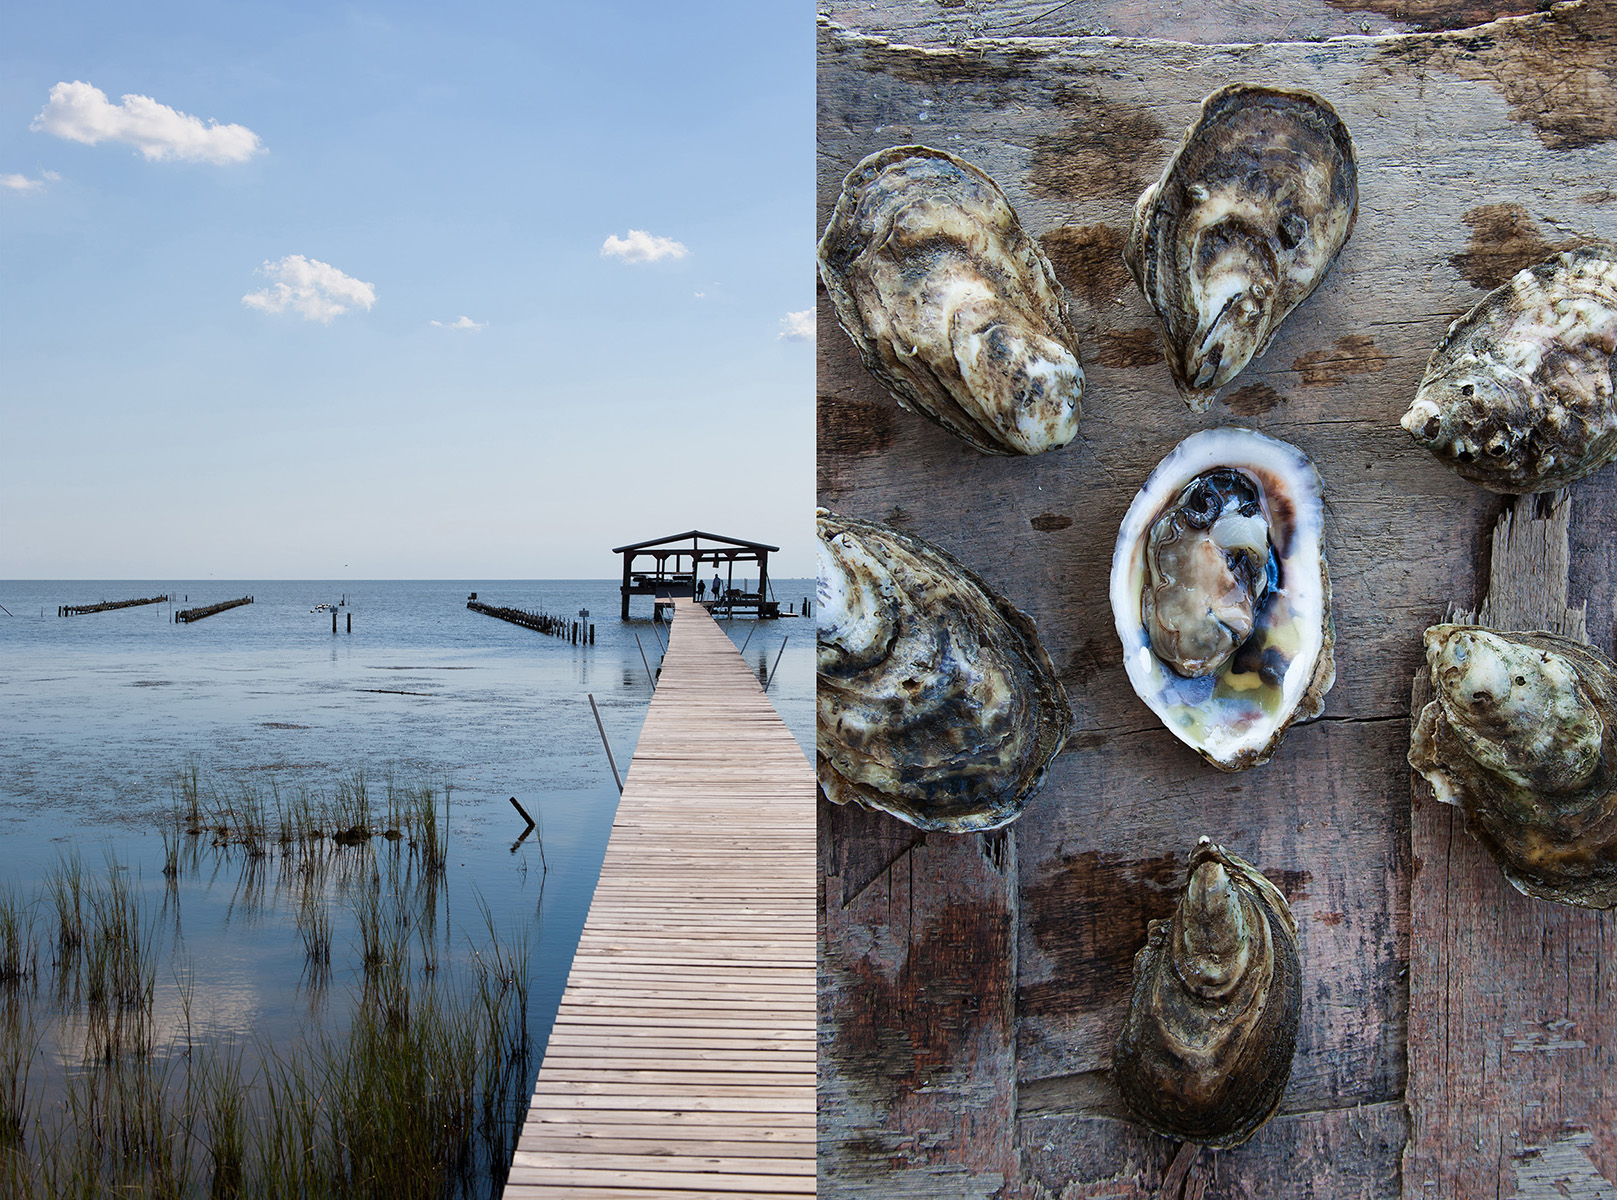 Point aux Pins Oyster Farm | Bayou La Batre, Alabama